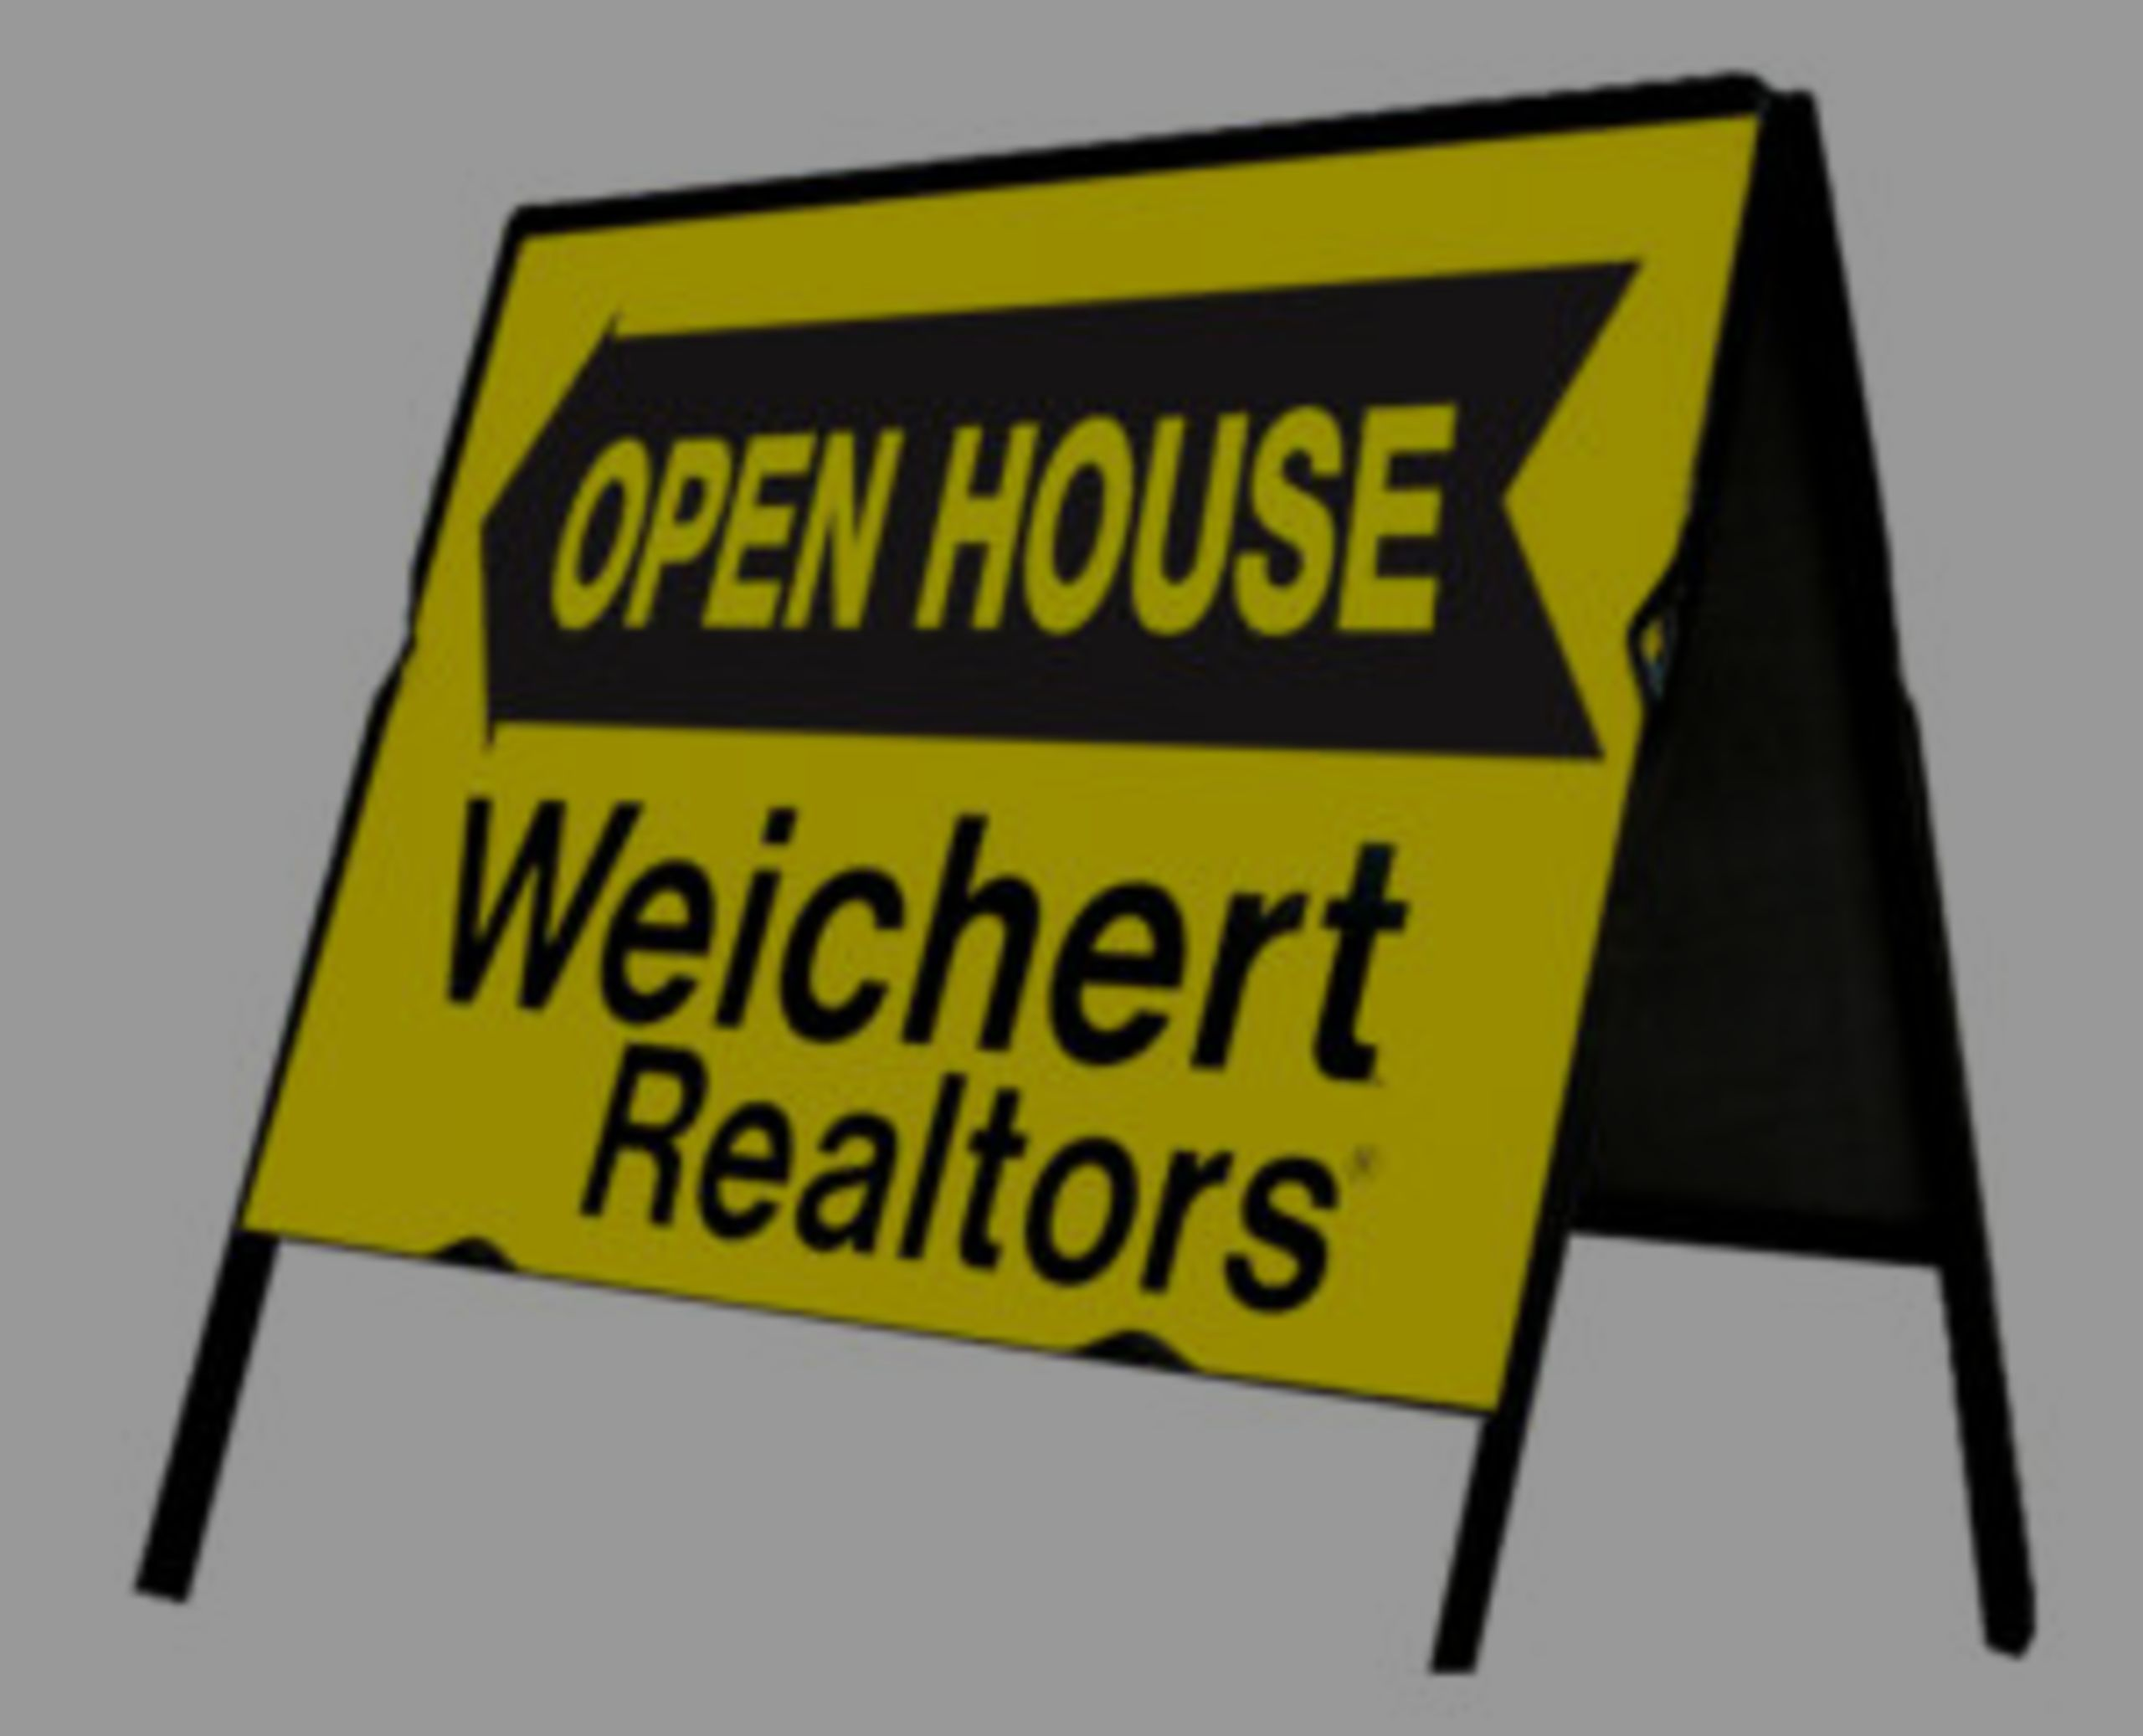 Almost 3 out of every 4 home buyers visit at least one open house.